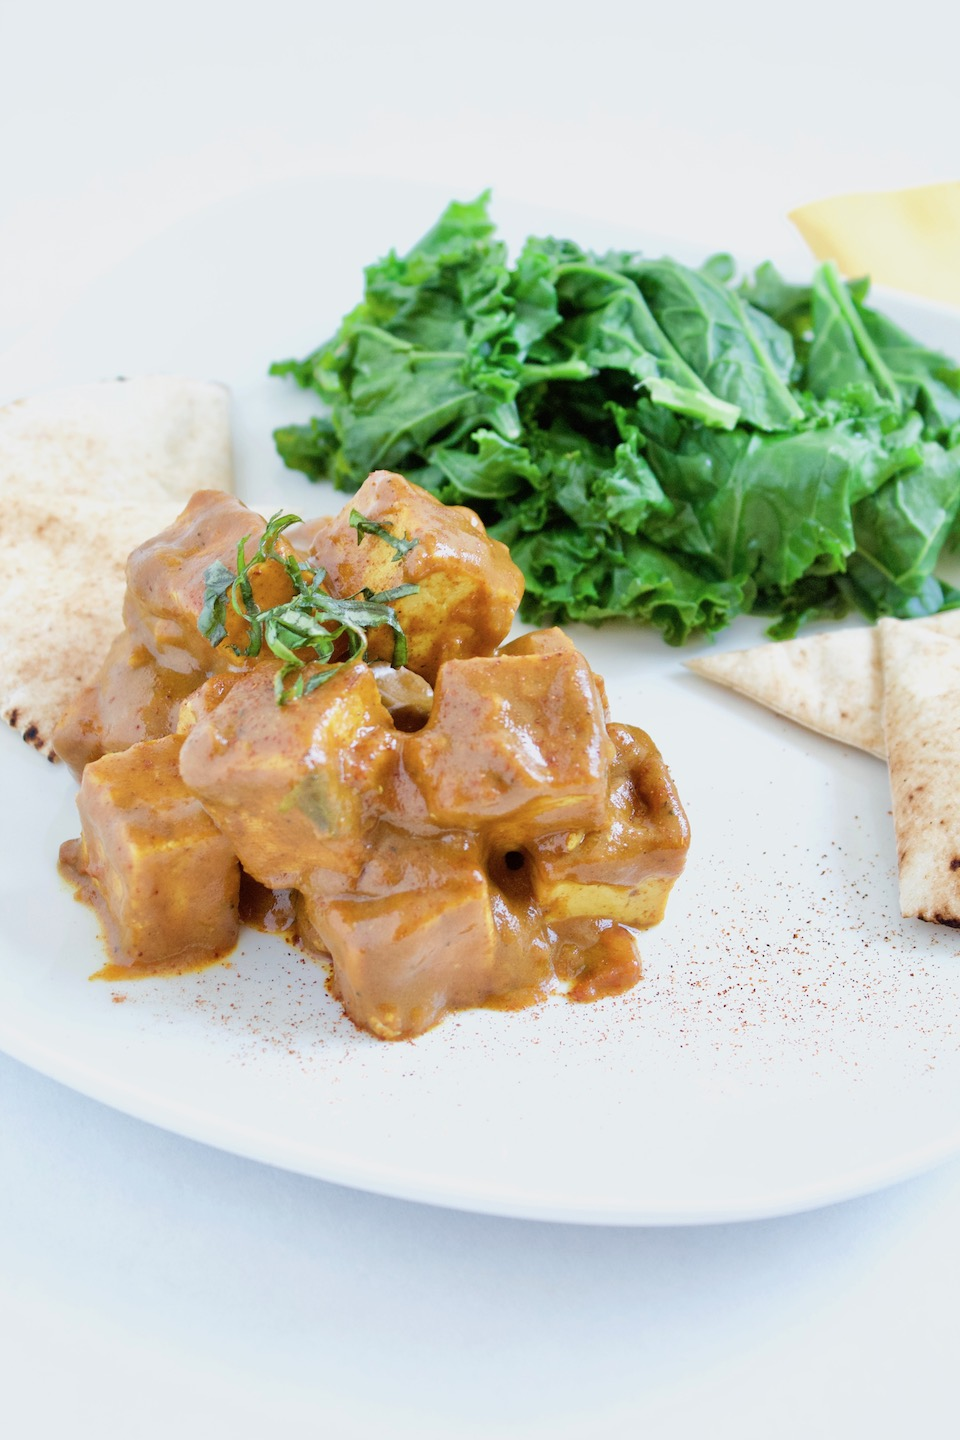 Vegetarian Paprikash Recipe -- This tofu smothered in a thick and spicy sauce makes a perfect meat-free dinner that's ready in under 30 minutes! | Vegan | Gluten-Free | Healthy Dinner | @sinfulnutrition